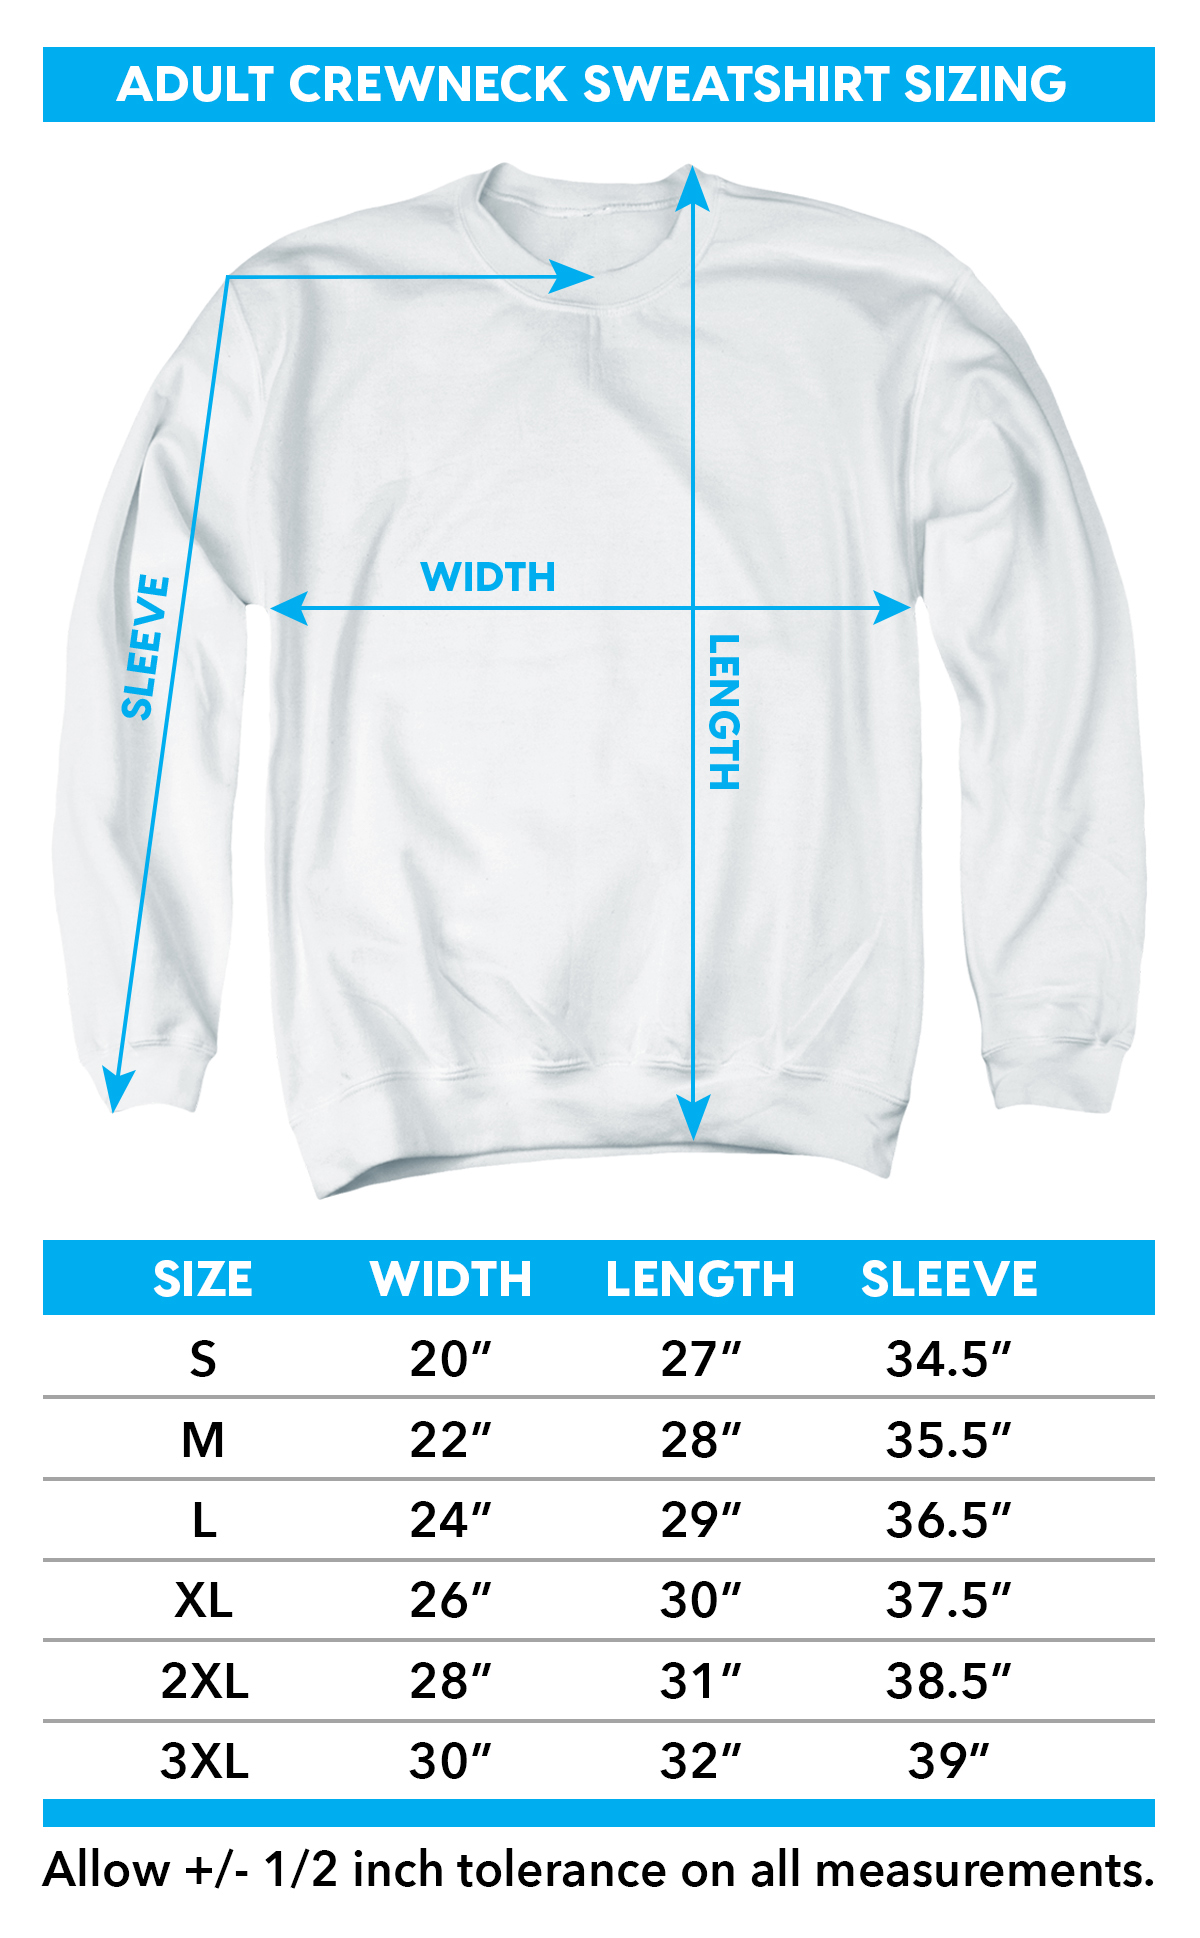 Sizing chart for the I Dream of Jeannie Lamp crewneck sweatshirt